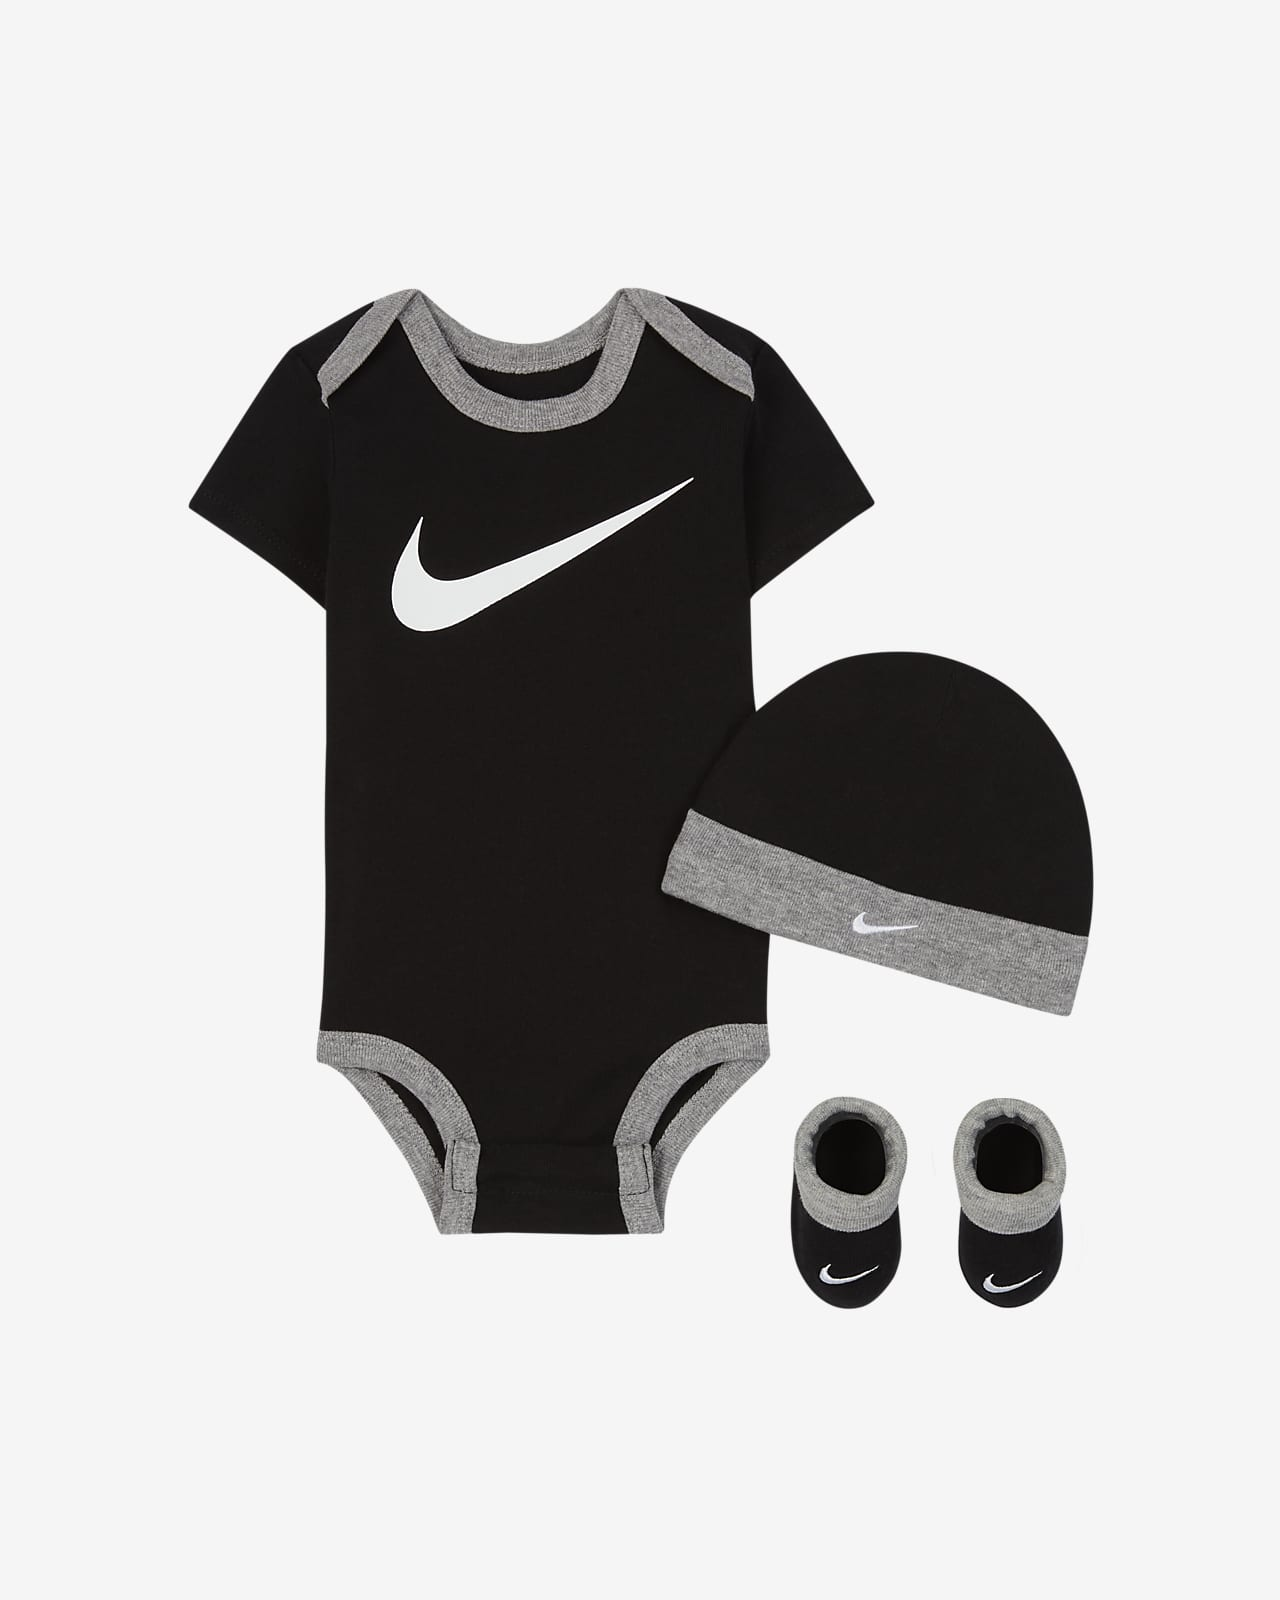 Nike Baby Size 0-3 Months One Piece Body Suit 2 Fast 2 Catch Orange New With Tag